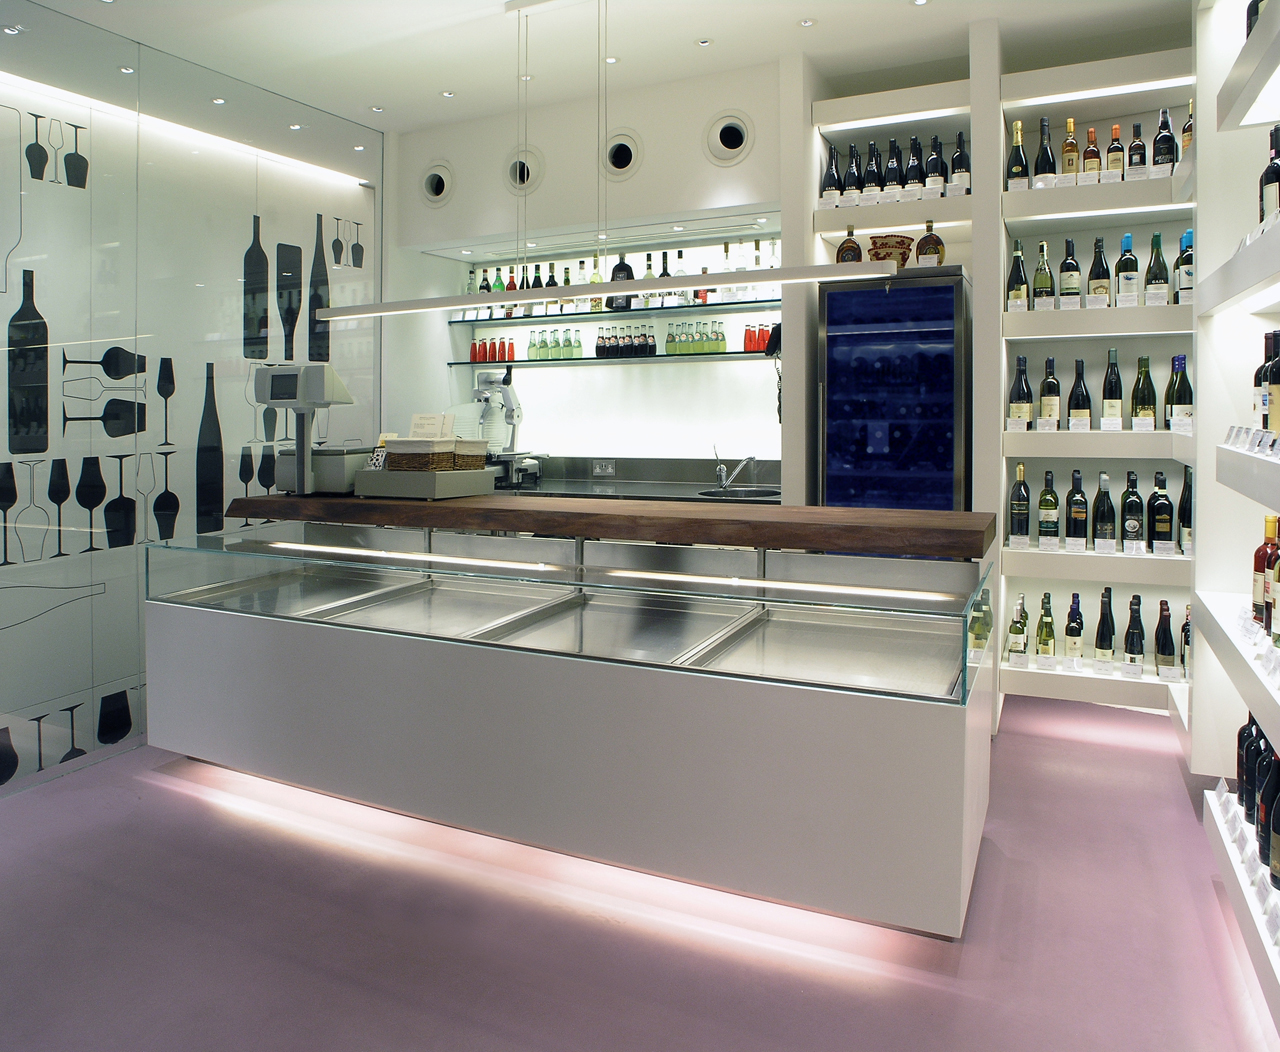 Imagine these retail interior design olivino delicatessen shop london pierluigi piu Interior design stores london